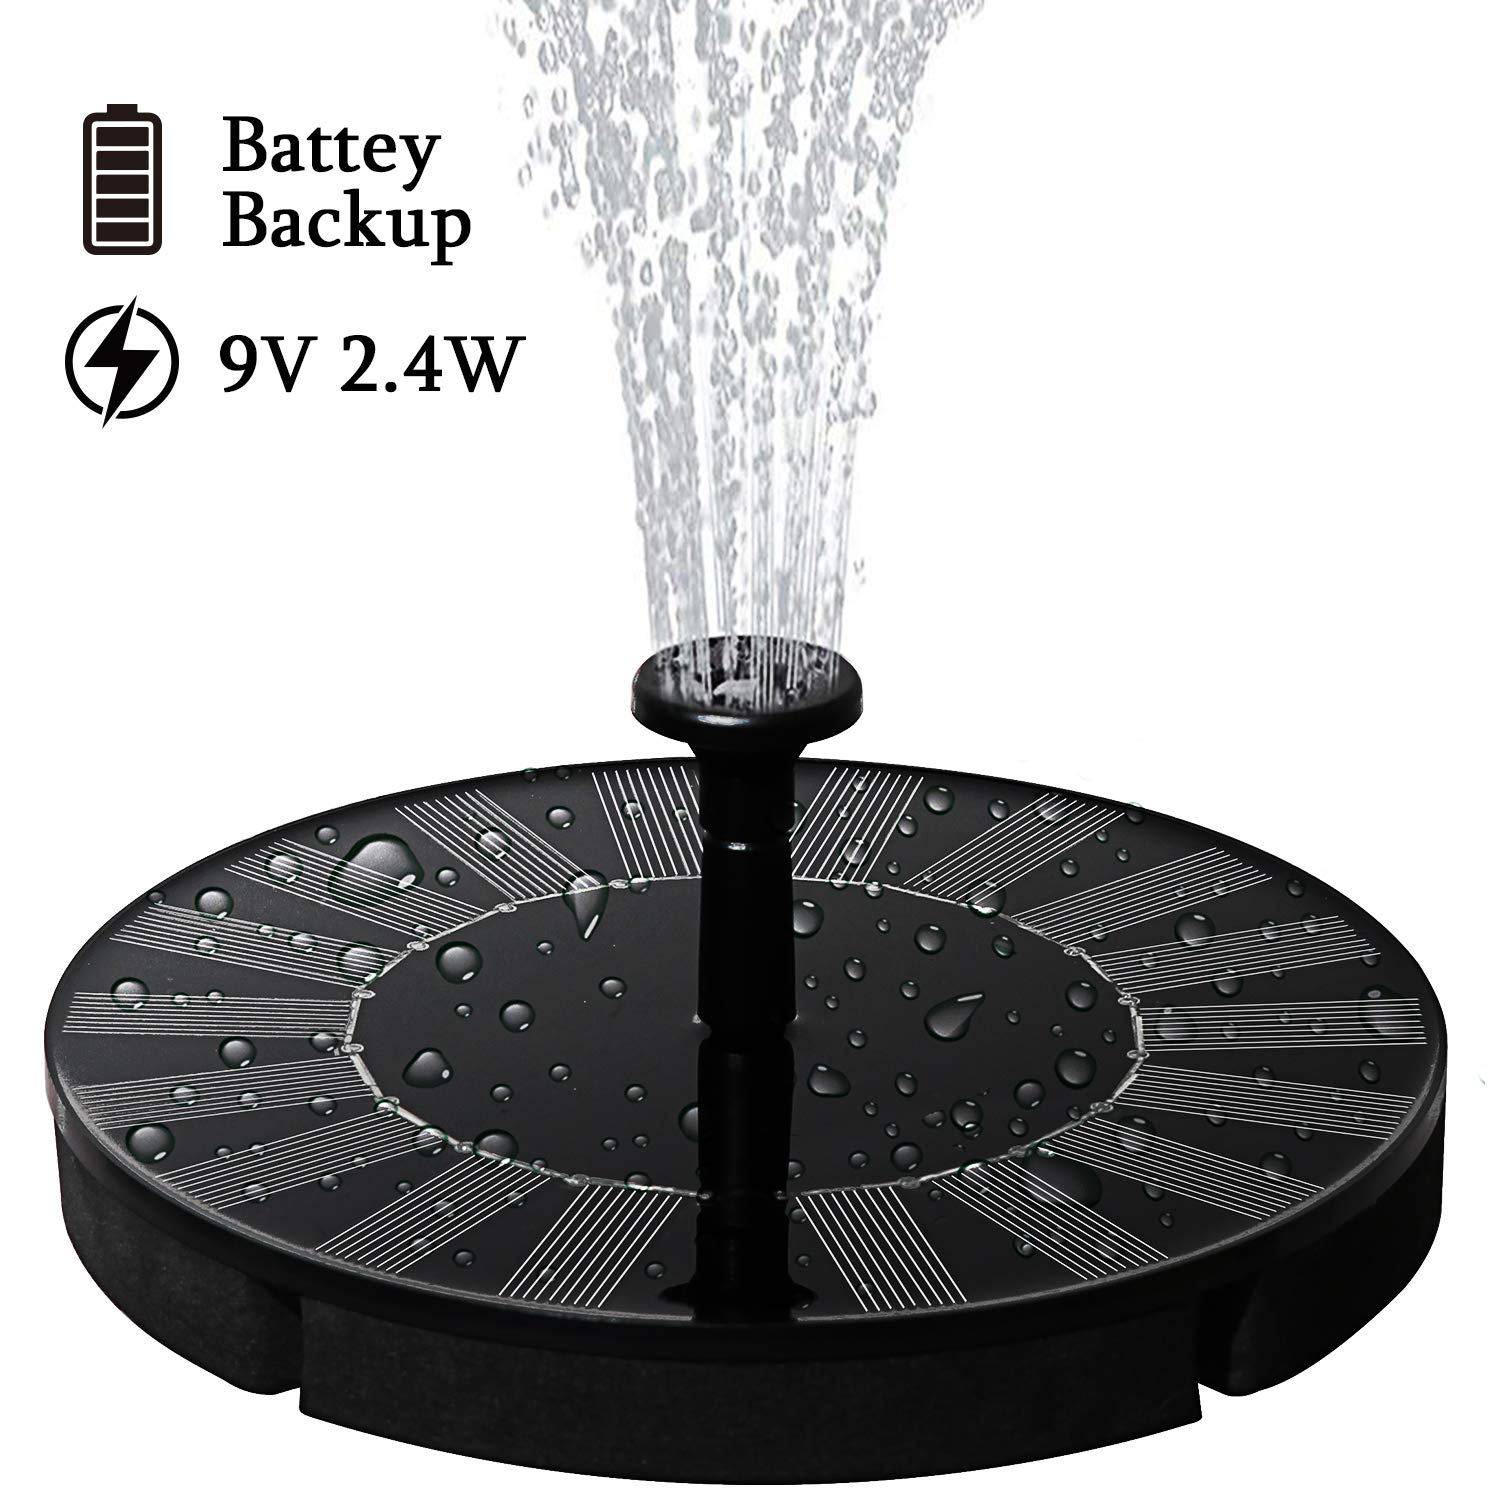 lailme Solar Fountain,Solar Powered Fountain Pump for Bird Bath, New Model Solar Water Fountain Pump 9V 2.4W with Battery Back,4 Different Spray Pattern Heads for Pool, Garden, Pond, Fish by lailme